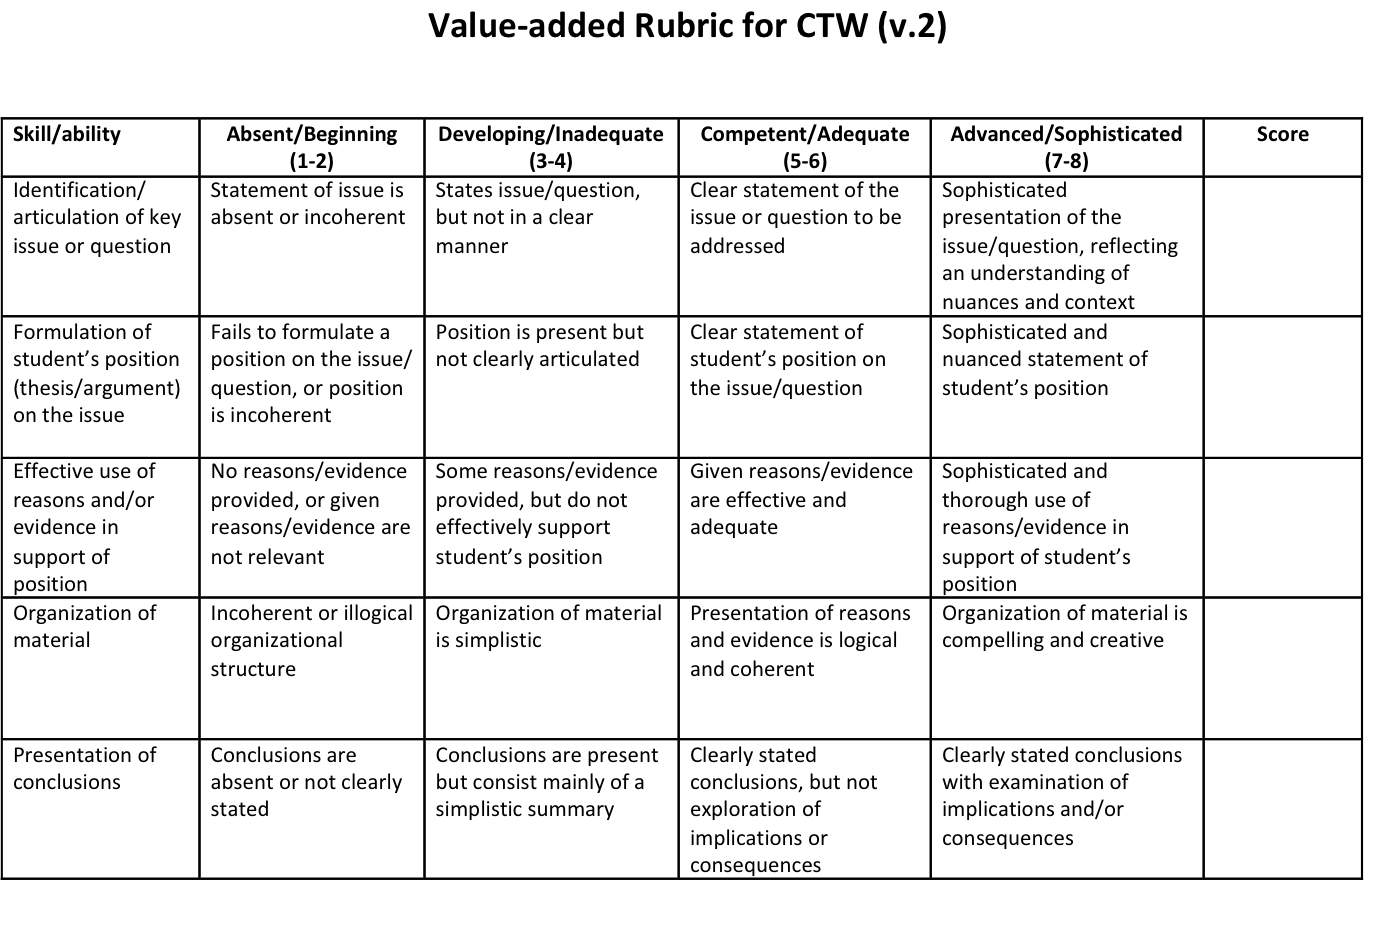 peer evaluation rubric for essay In a peer assessment, you grade responses that your peers have submitted while   to get started, go to the self-assessed essay unit, and then enter a response  in  when the problem opens, compare the student's response with the rubric.